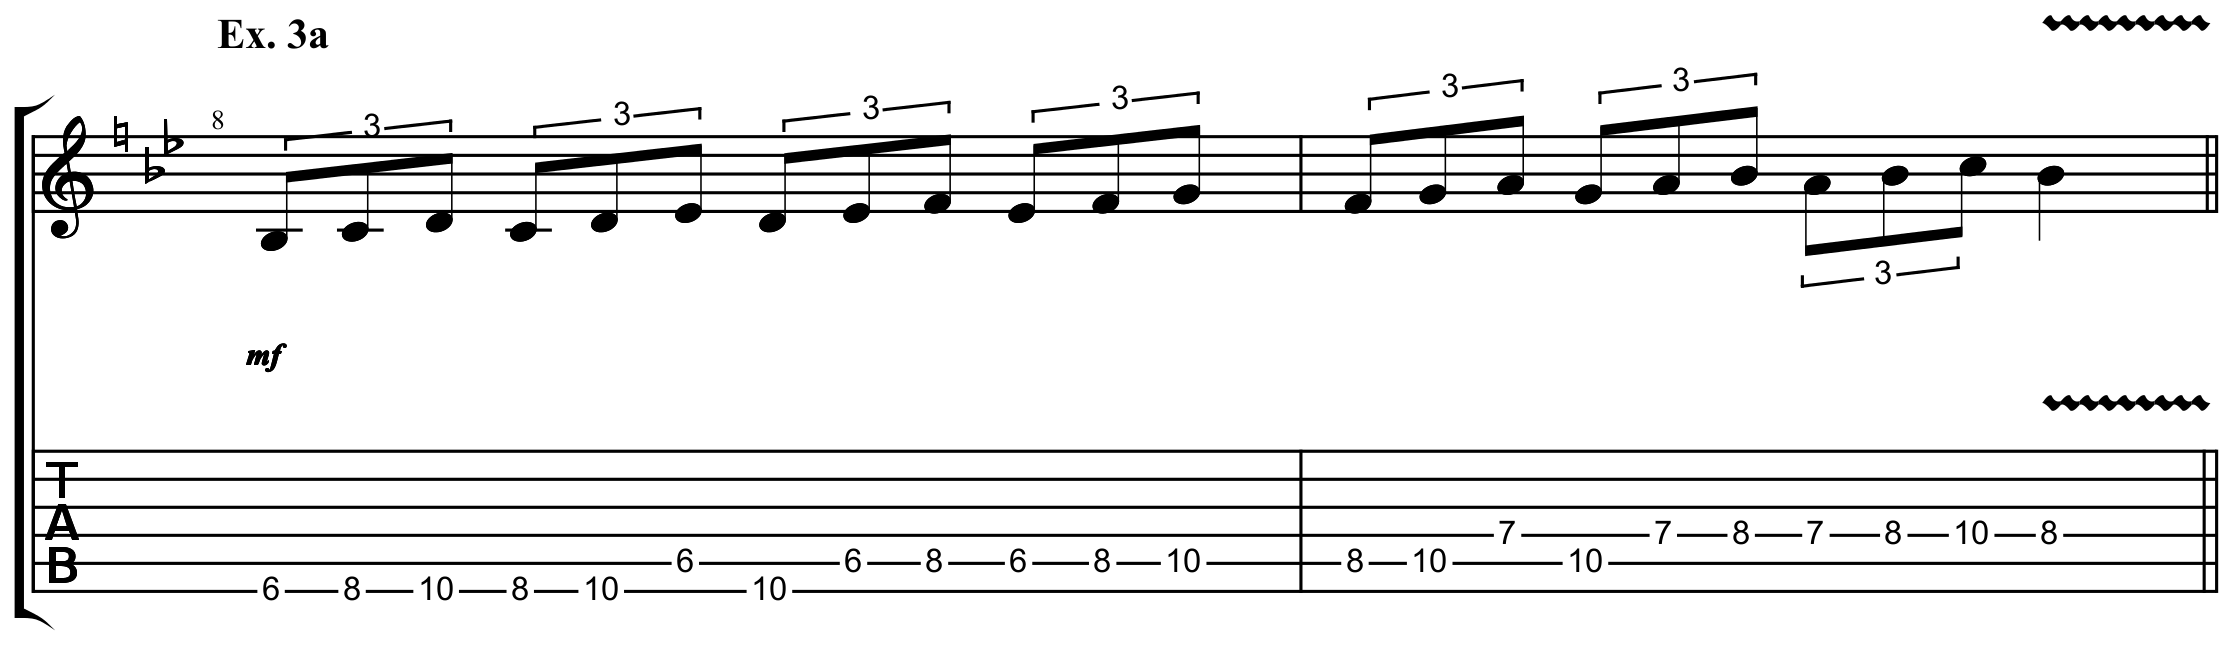 a solo scale run for guitar that uses a sequence or pattern